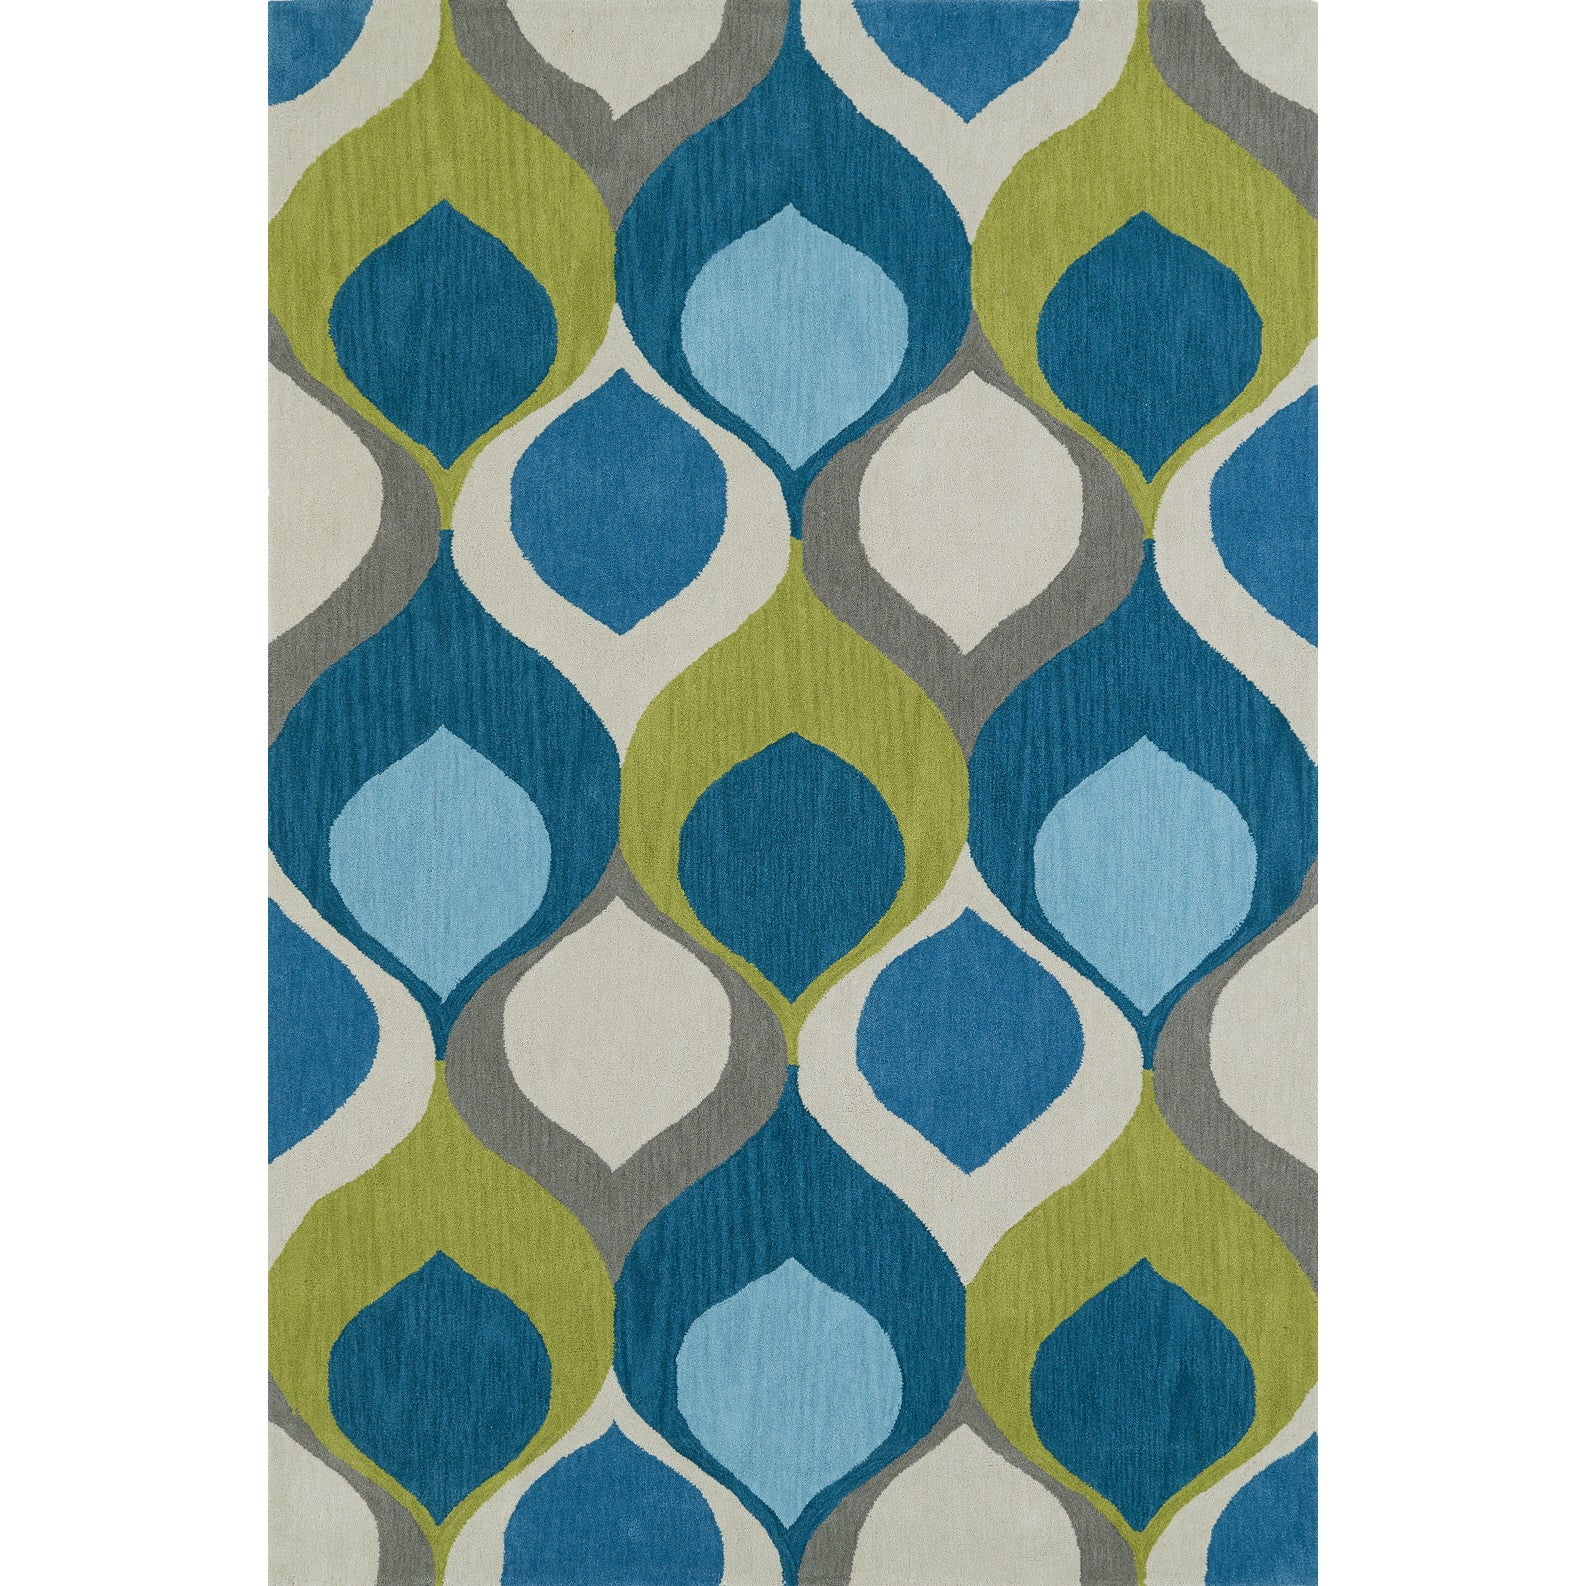 Addison Malia Bohemian Hourgl Blue Teal Lime Area Rug 5 X 7 6 Free Shipping Today 25392249